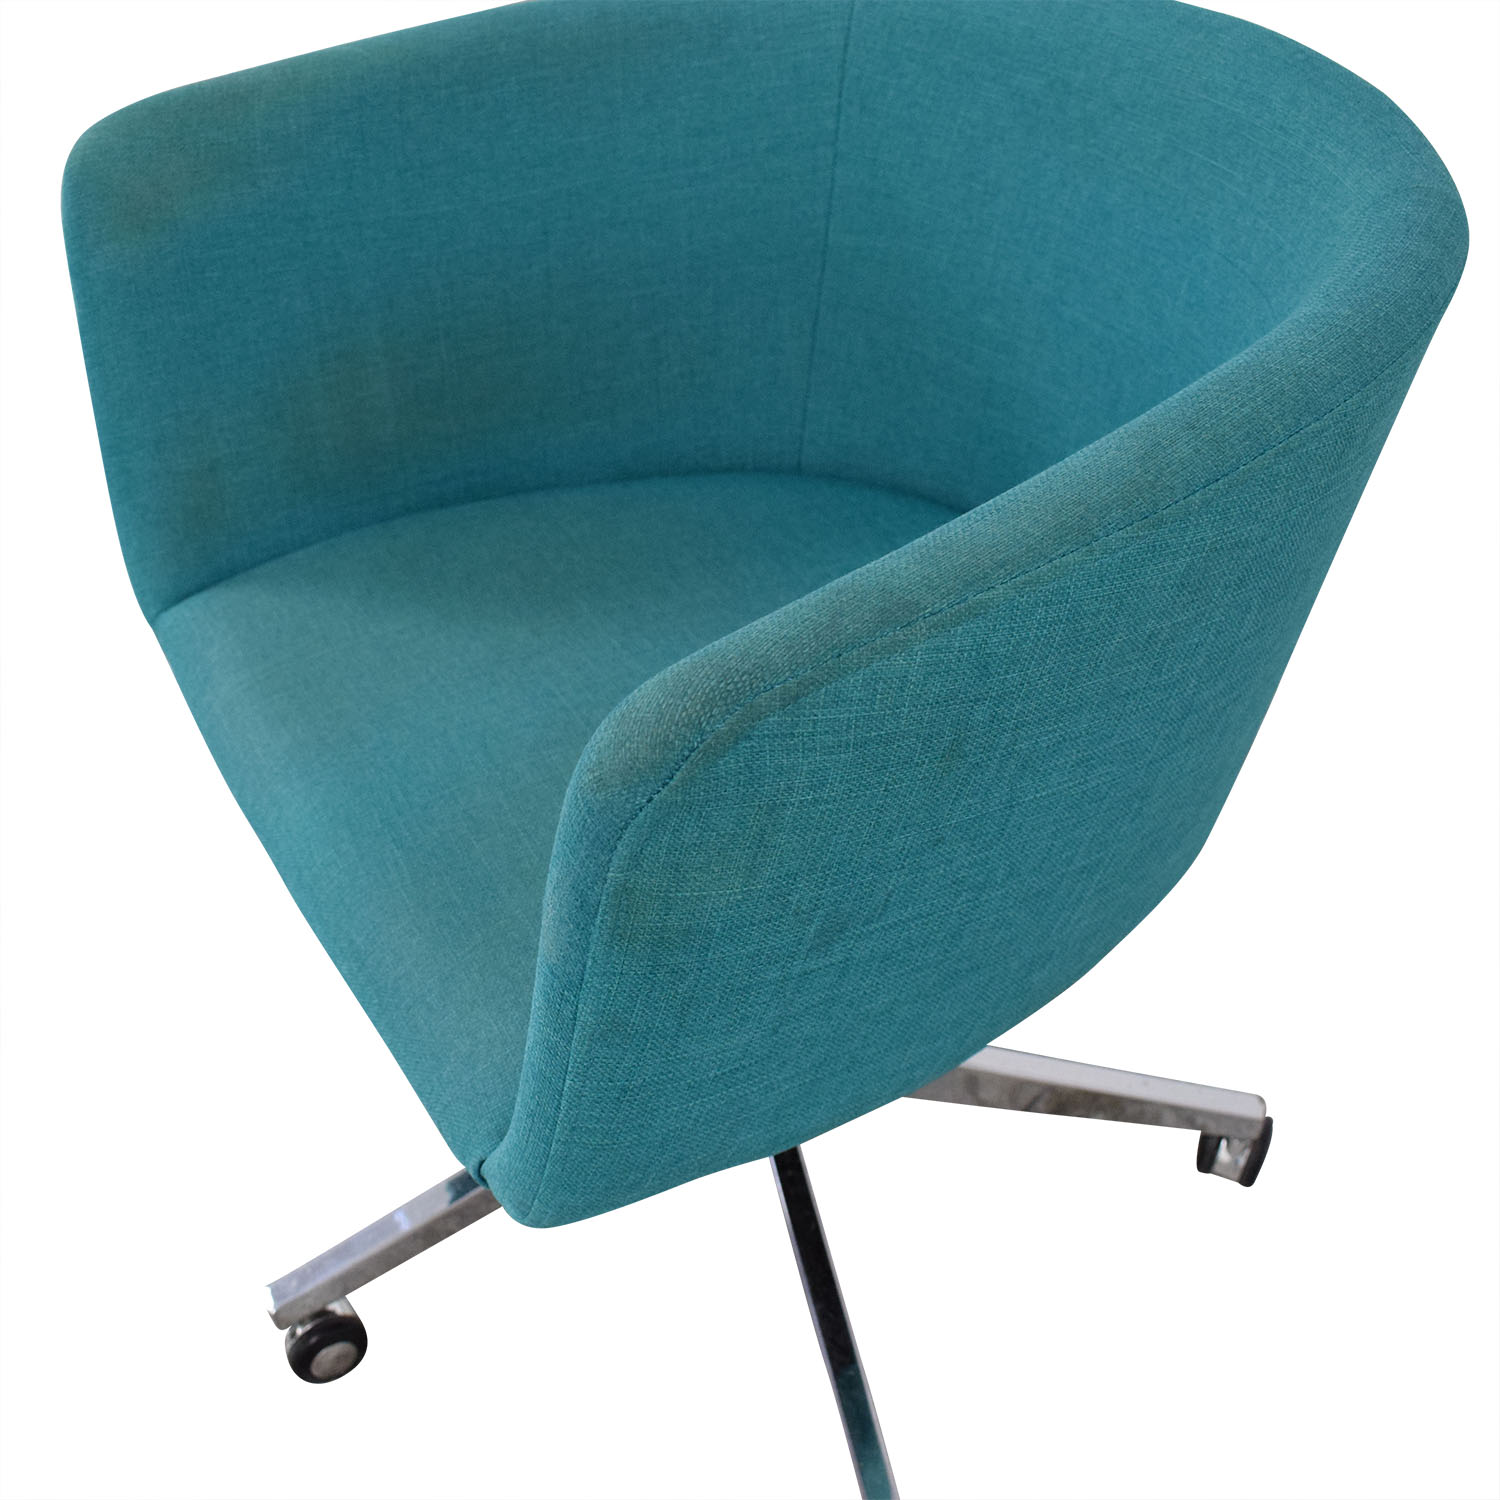 CB2 CB2 Coup Office Chair second hand